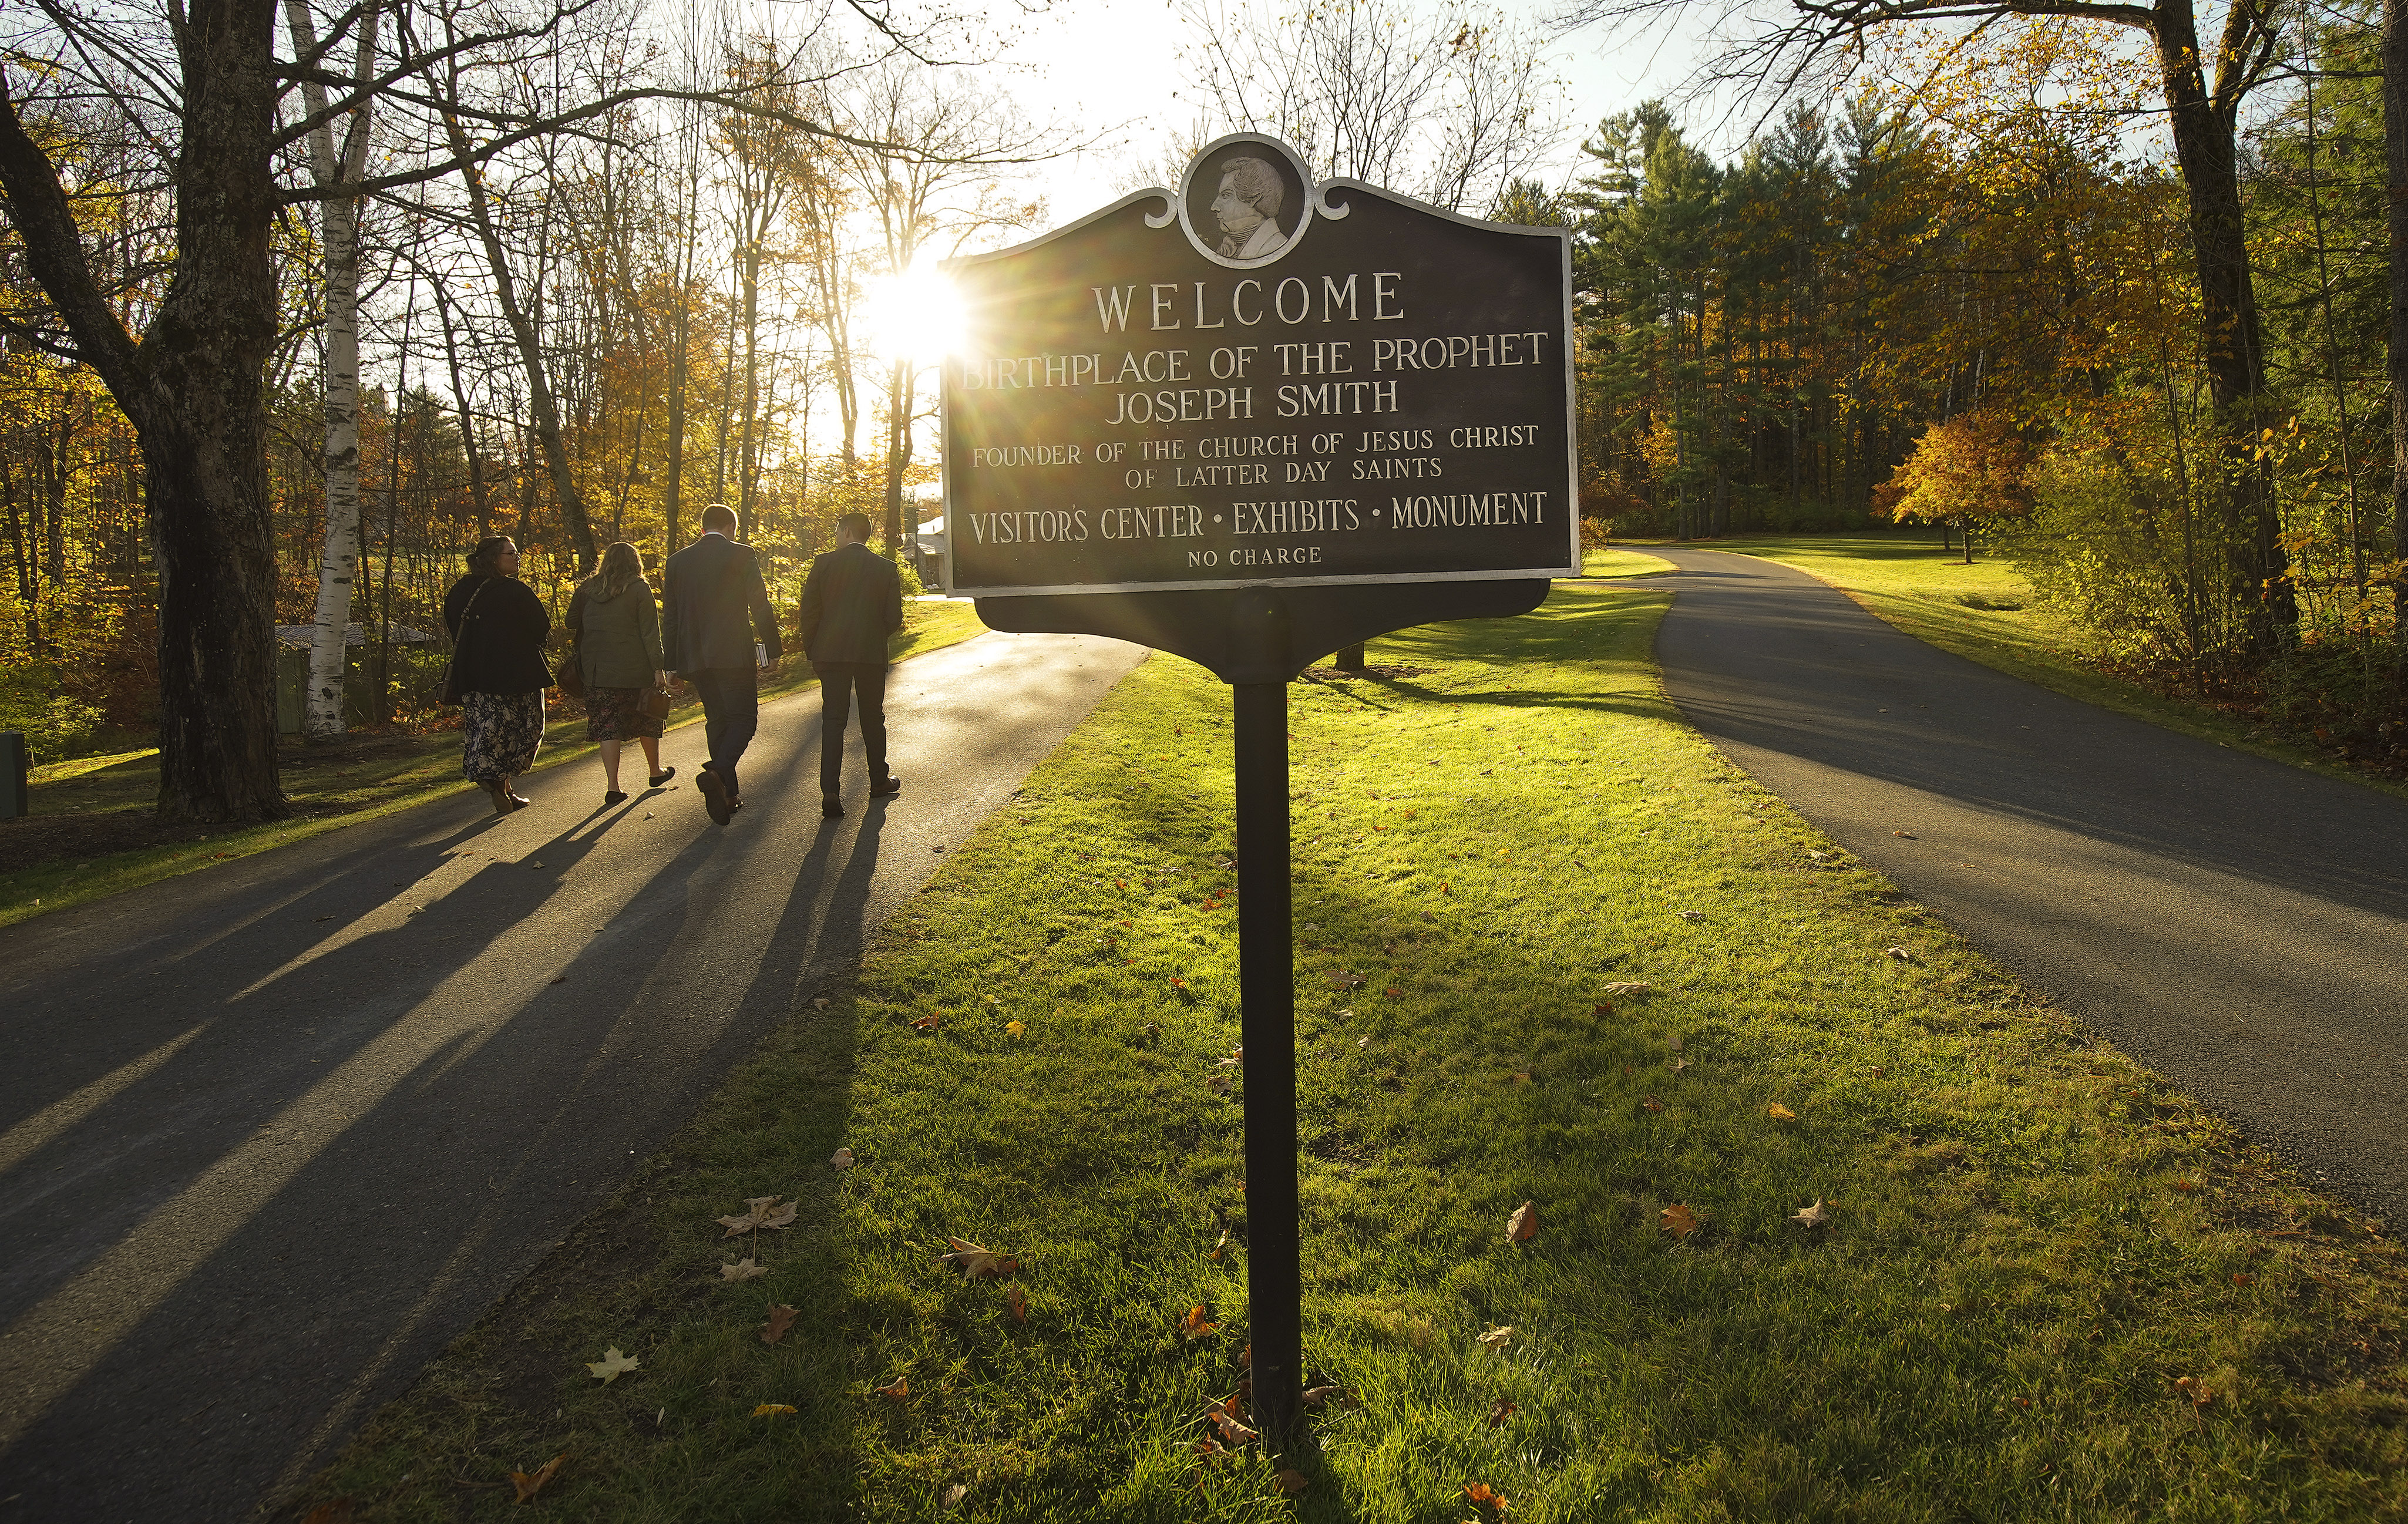 Missionaries walk to a meeting at the Joseph Smith Birthplace Memorial in Sharon, Vt., on Saturday, Oct. 19, 2019.